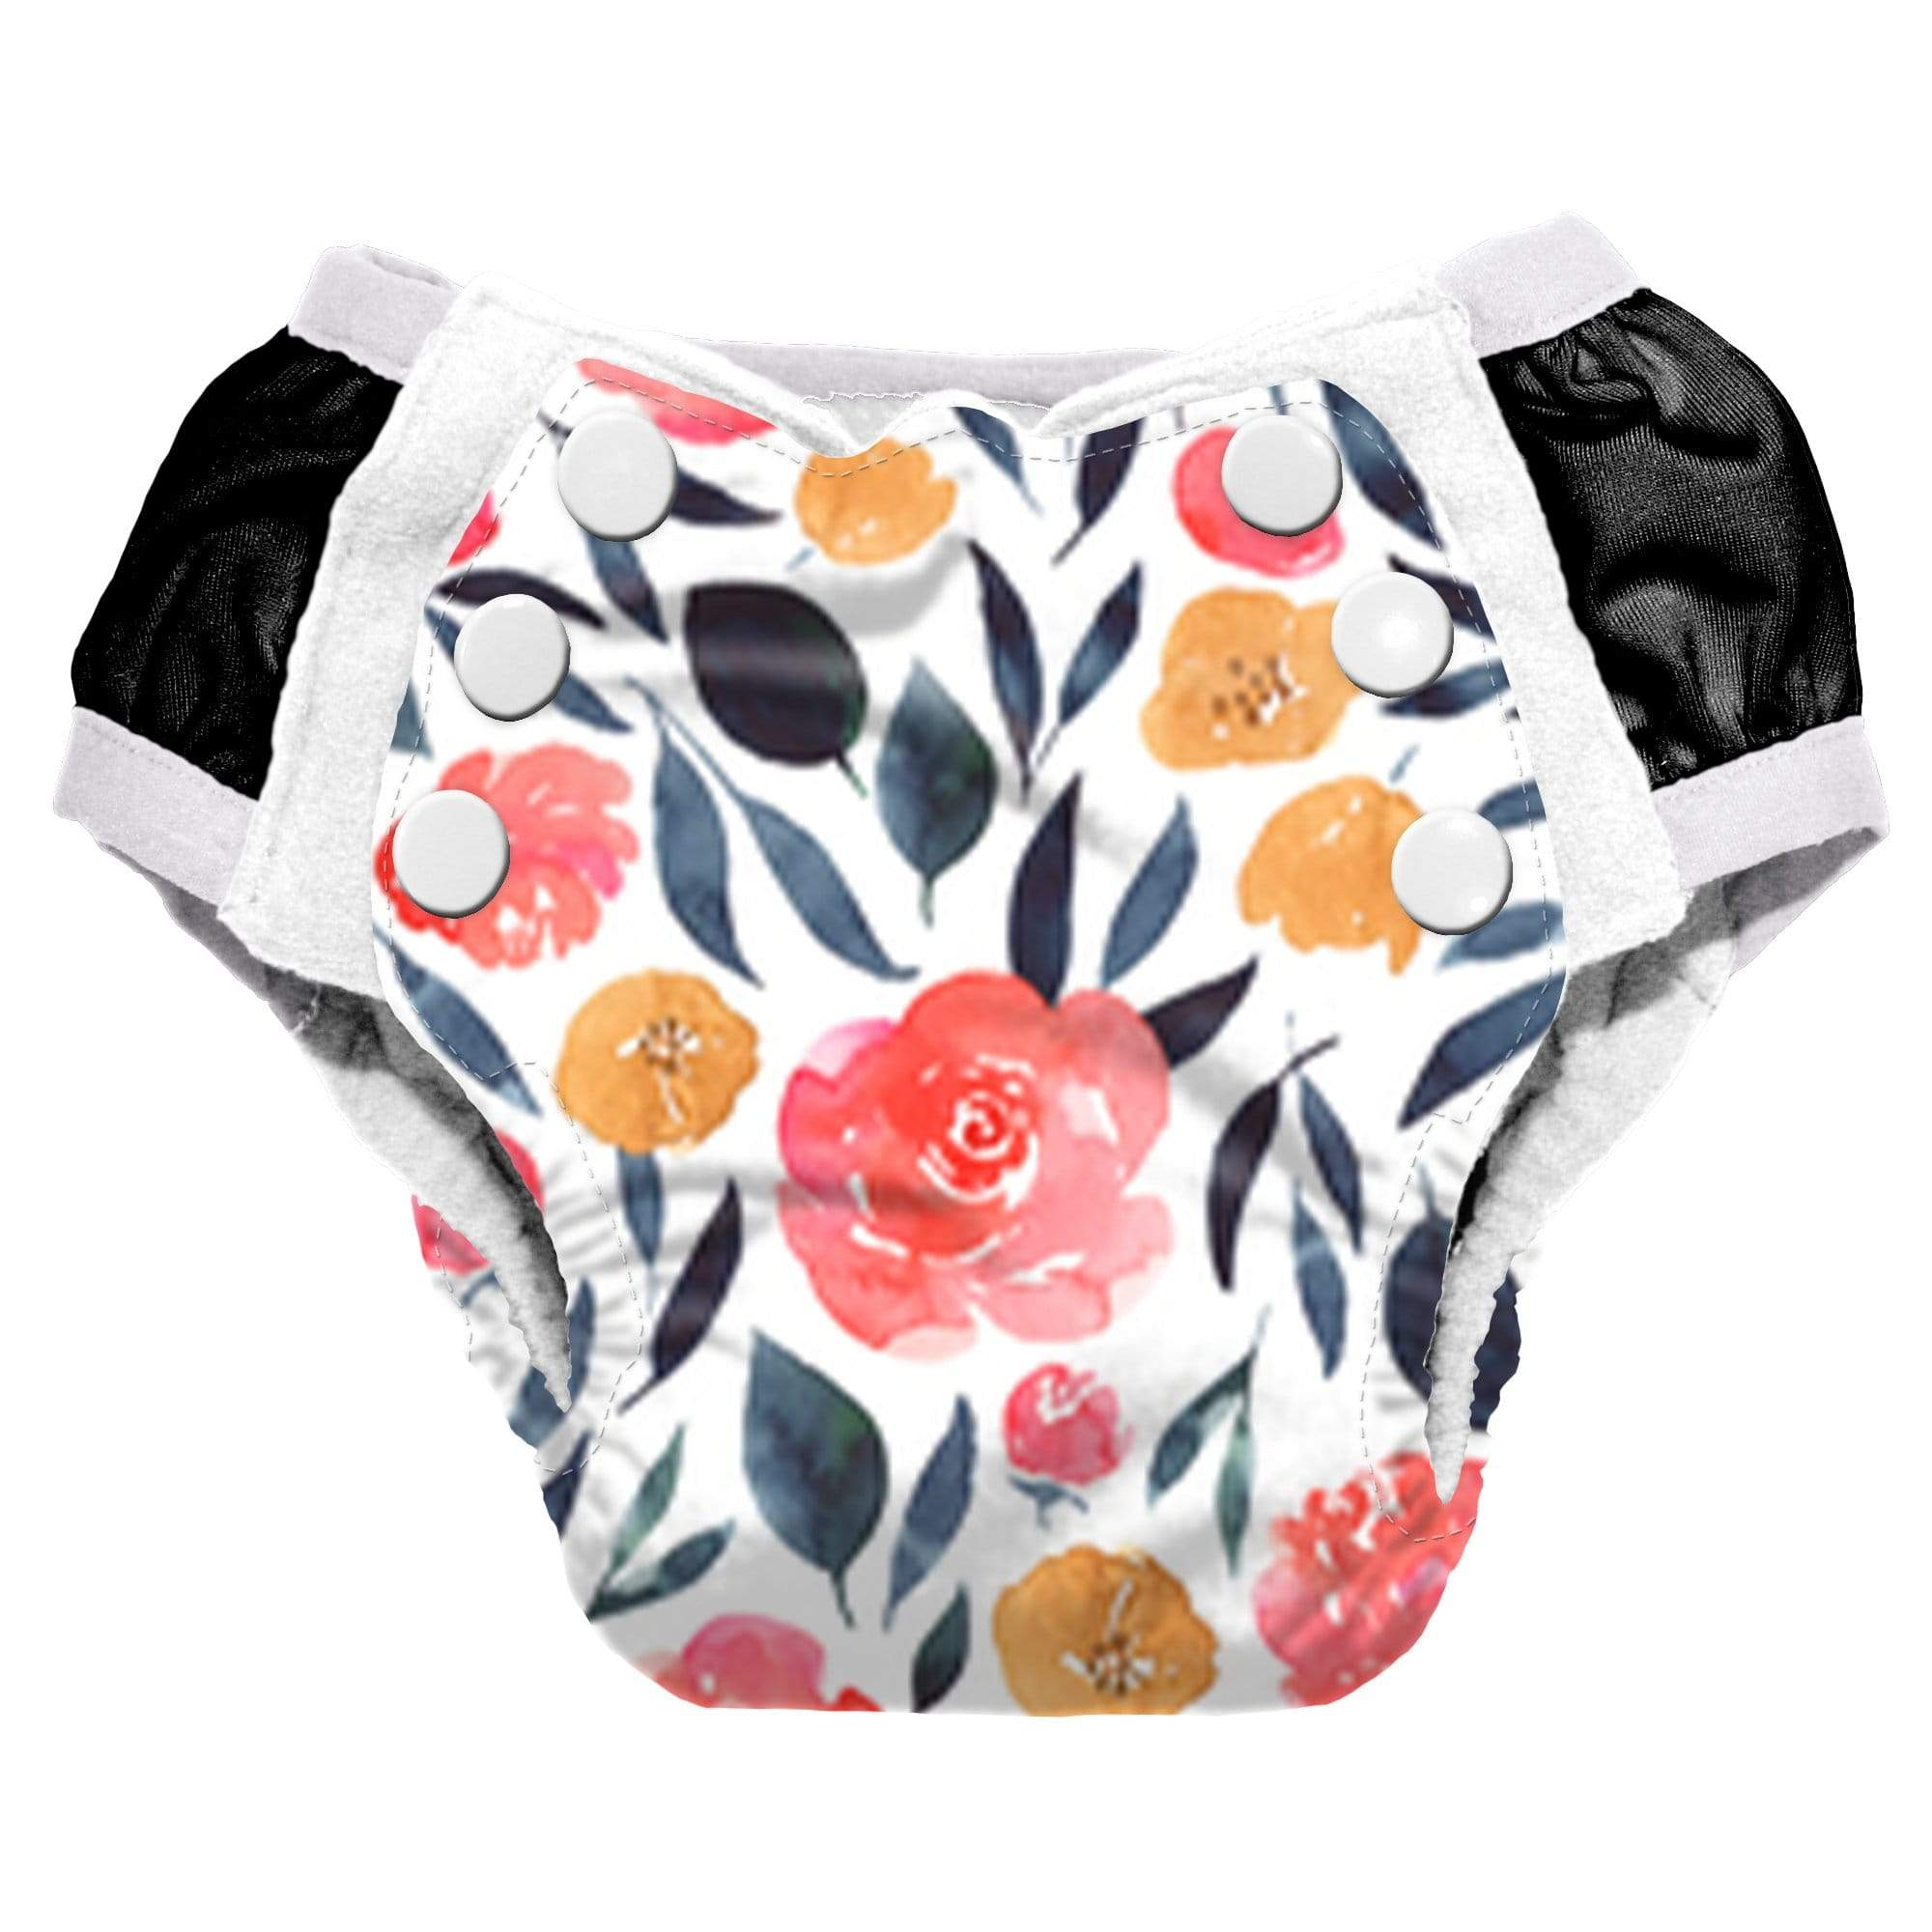 Nicki's Diapers Overnight Training Pants - Take Your Pick